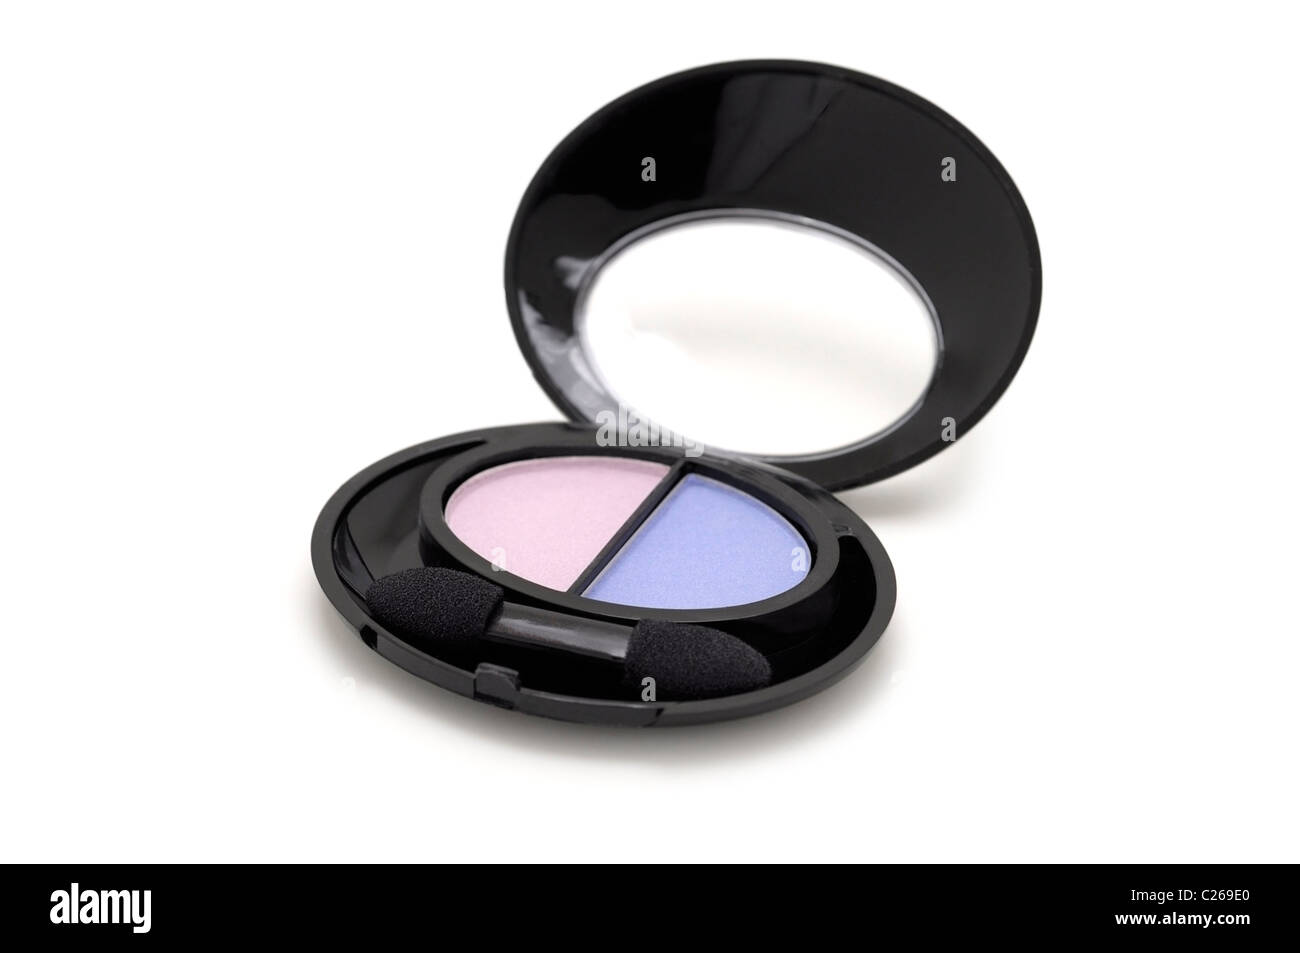 Eyeshadow Compact case - Stock Image